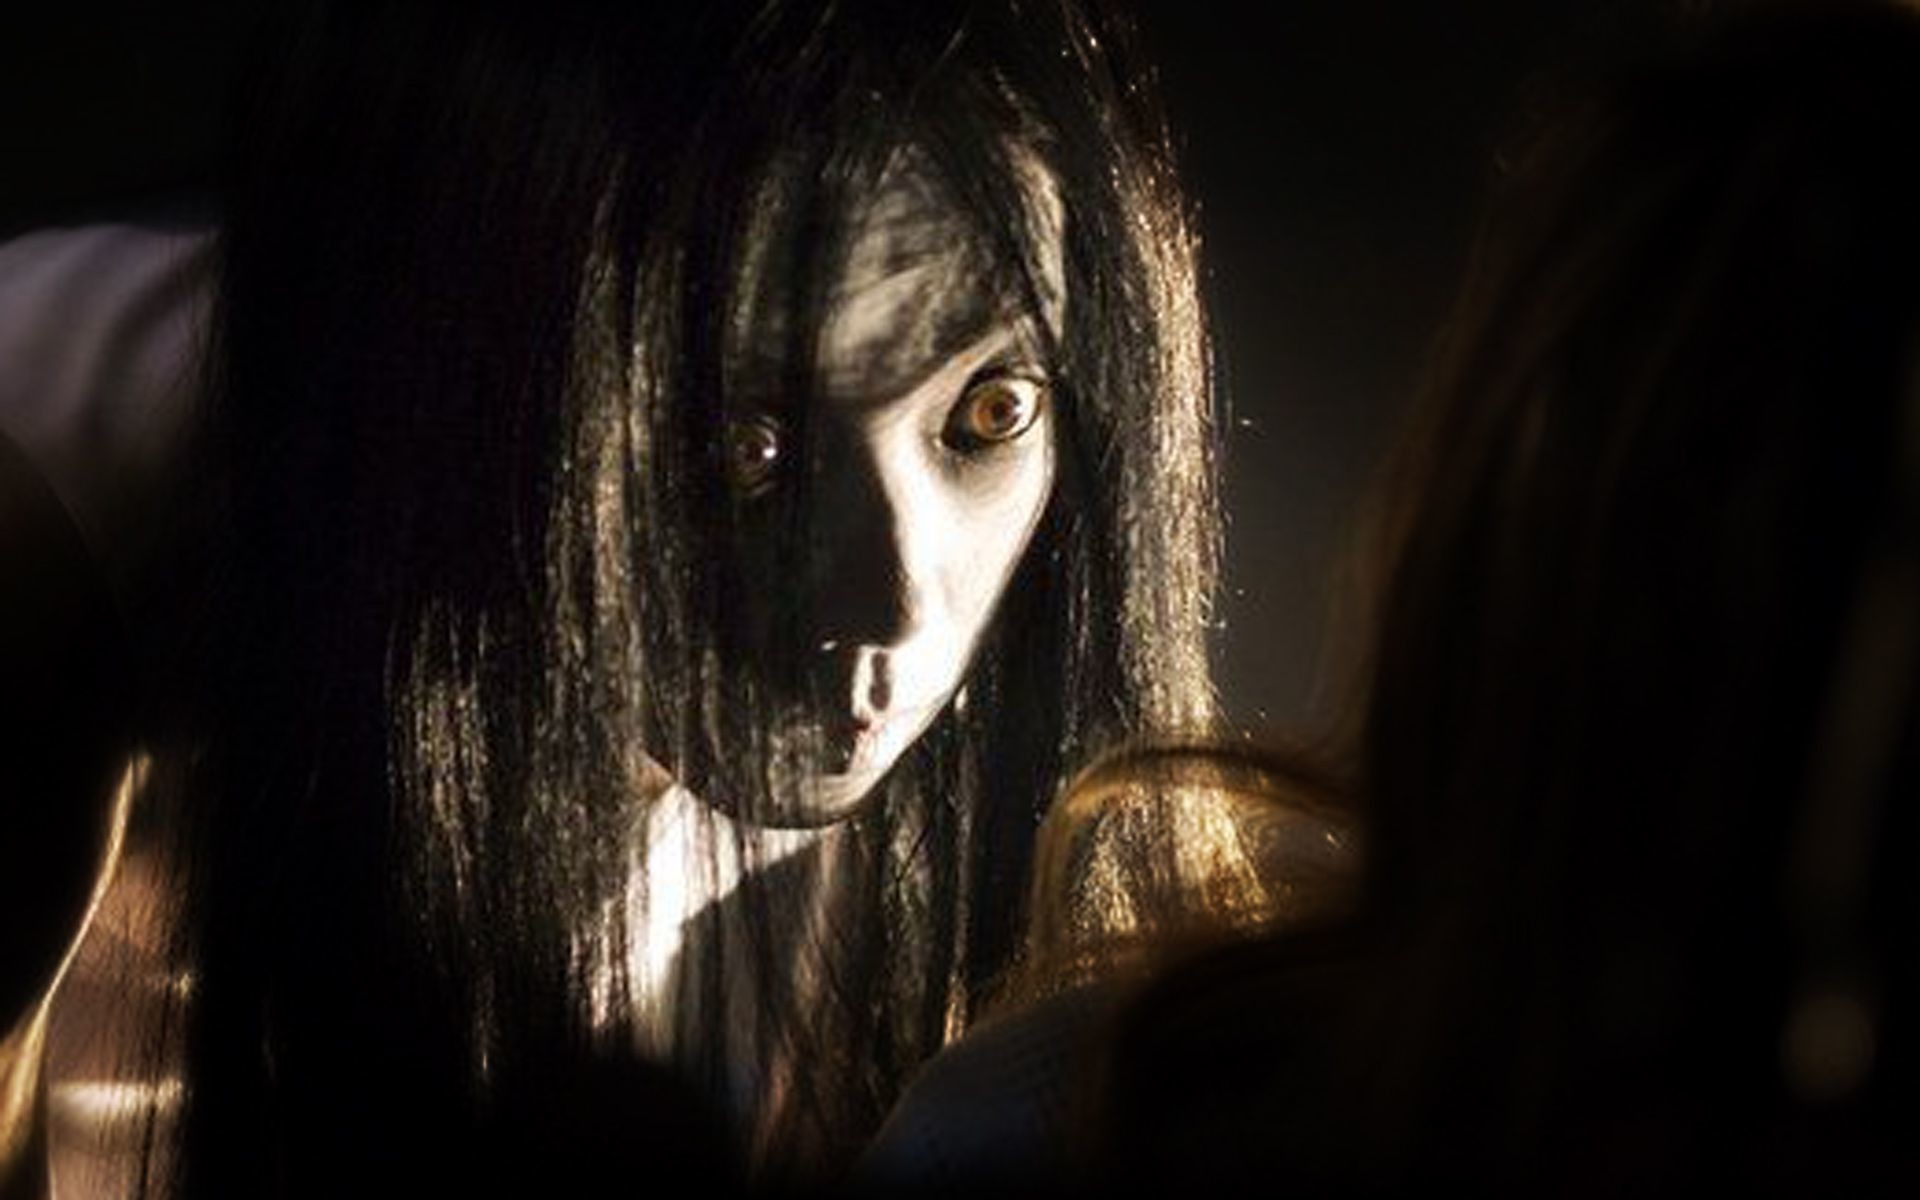 Horror Movie Wallpapers Wallpapertag: Scary Face Wallpaper ·① WallpaperTag